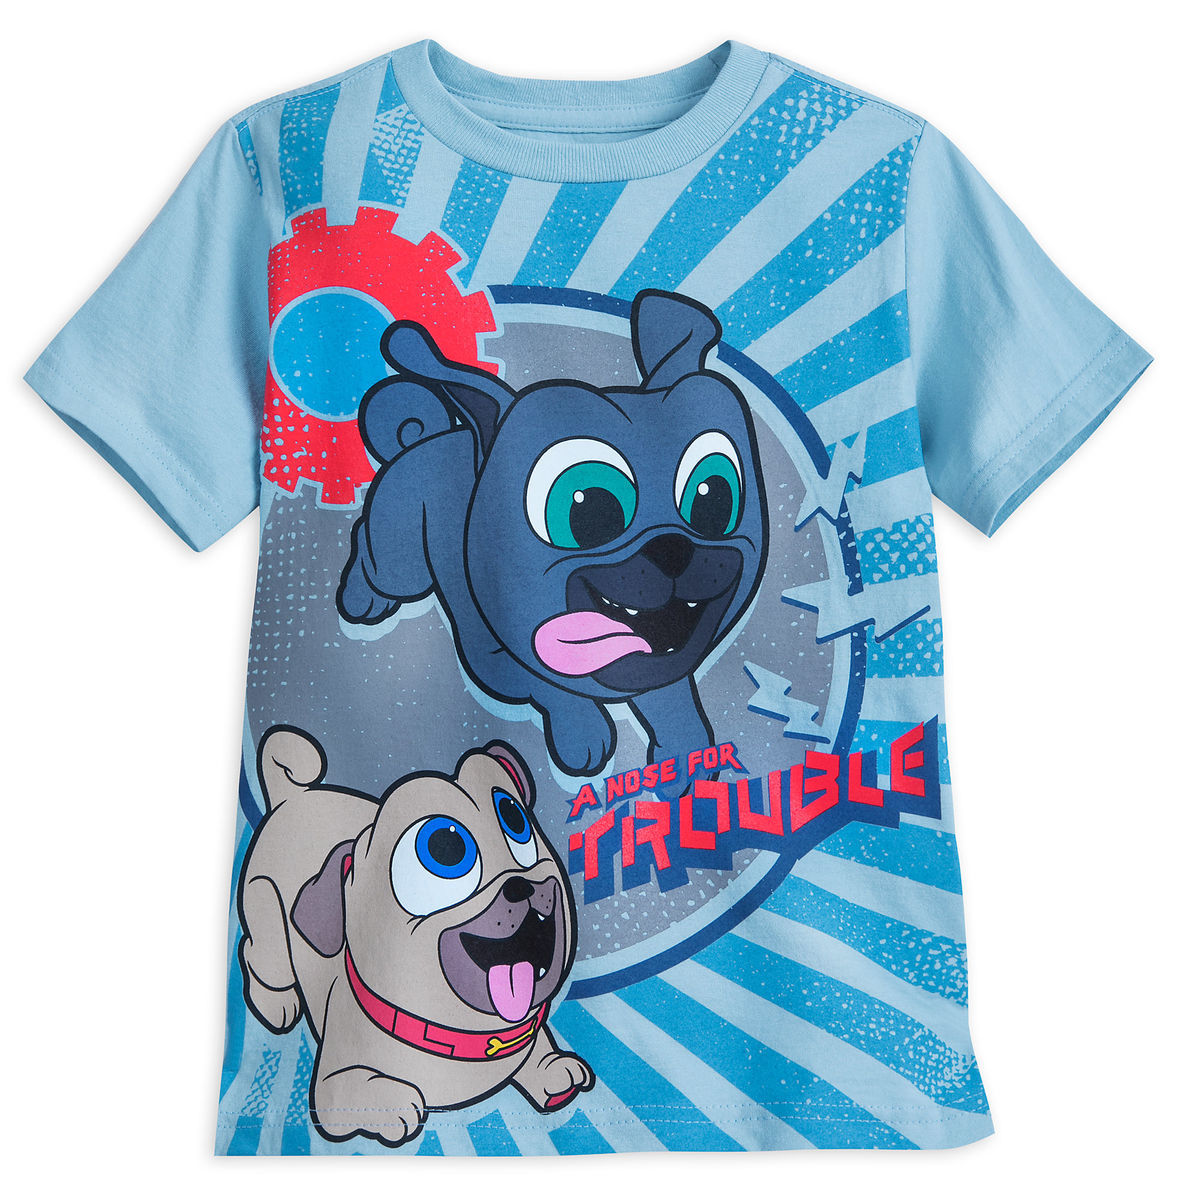 Bingo And Rolly T Shirt For Boys Puppy Dog Pals Shopdisney